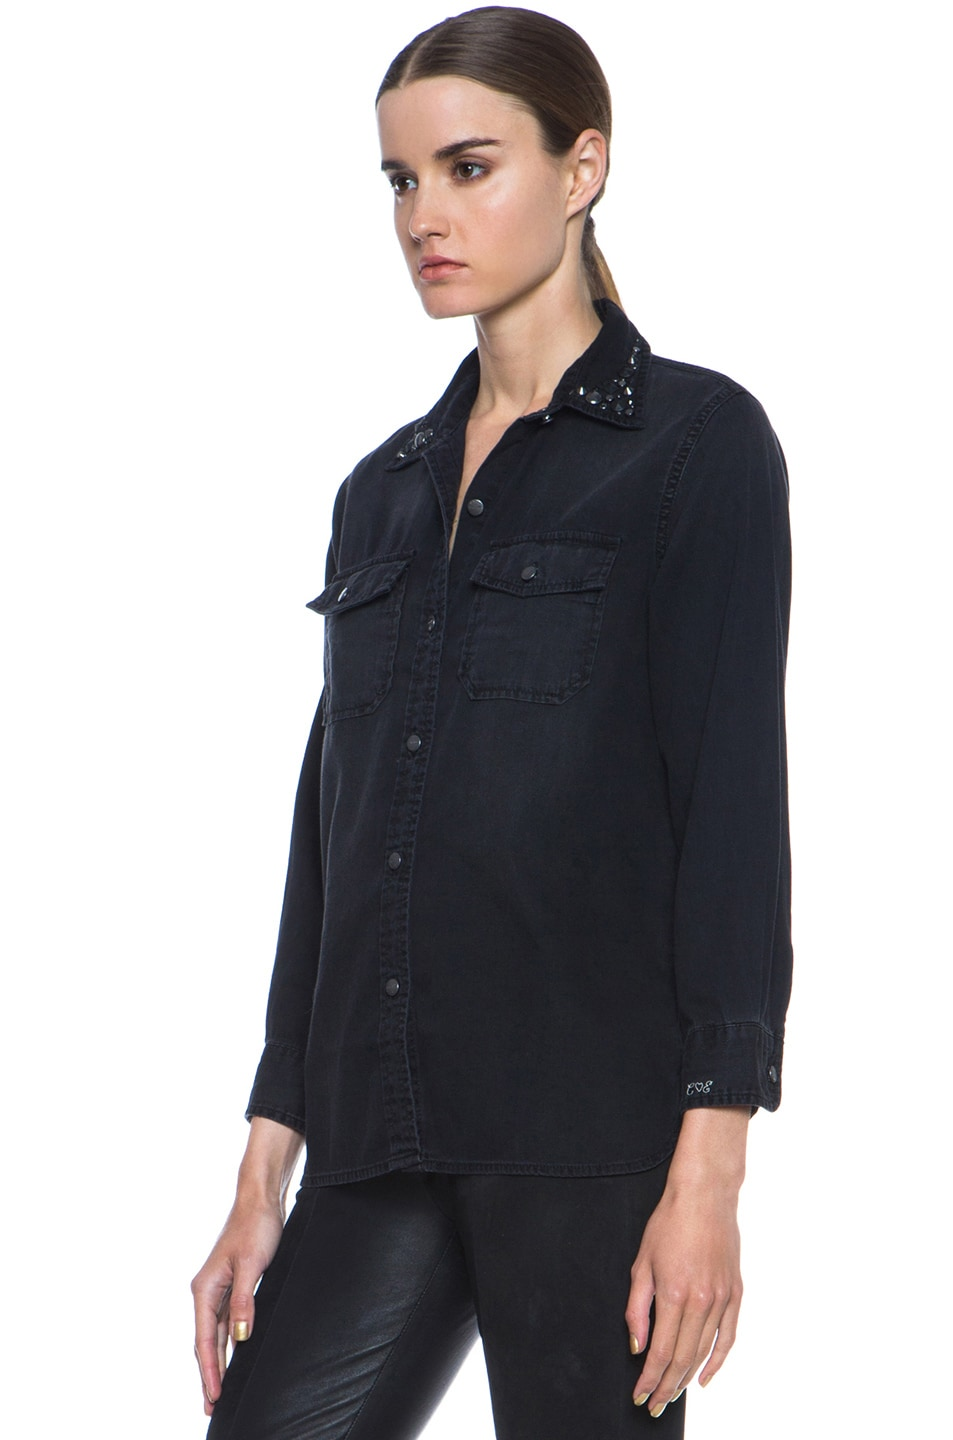 Image 2 of Current/Elliott Jean Perfect Shirt Without Epaulettes in Black & Jet